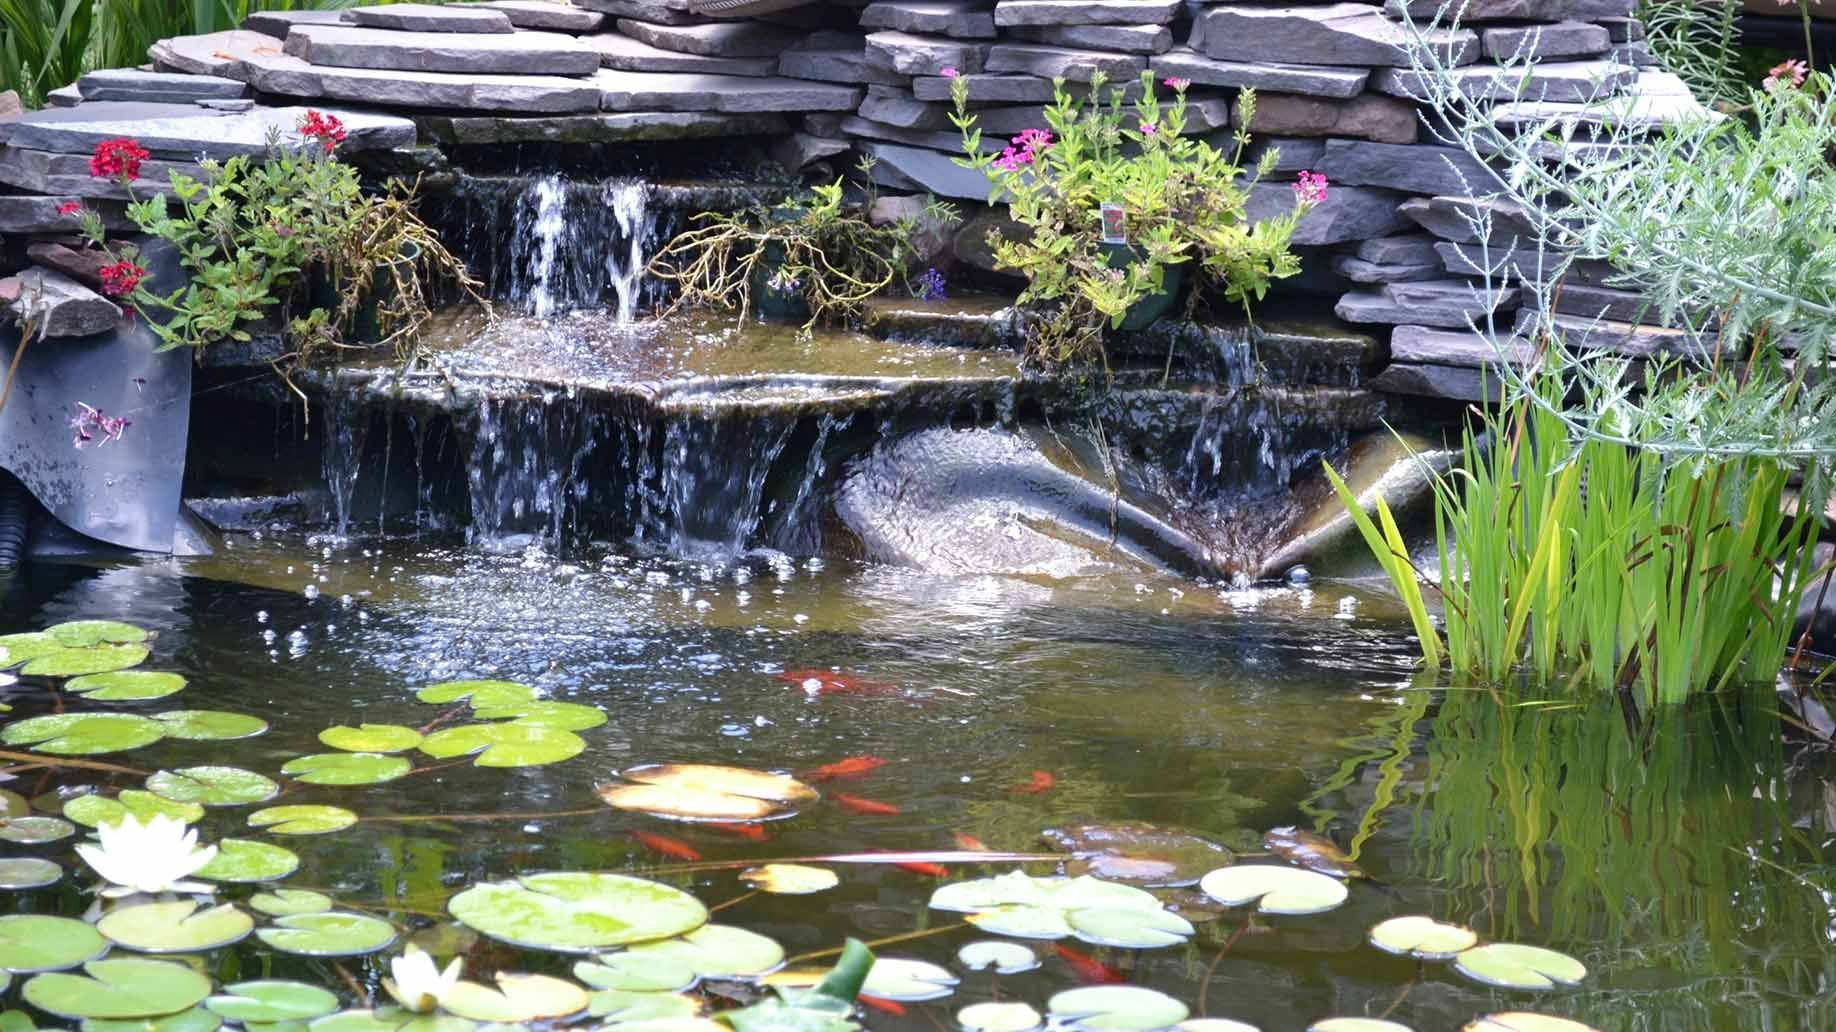 How To Build A Koi Pond Supplies Cost With Images Koi Pond Koi Pond Supplies Koi